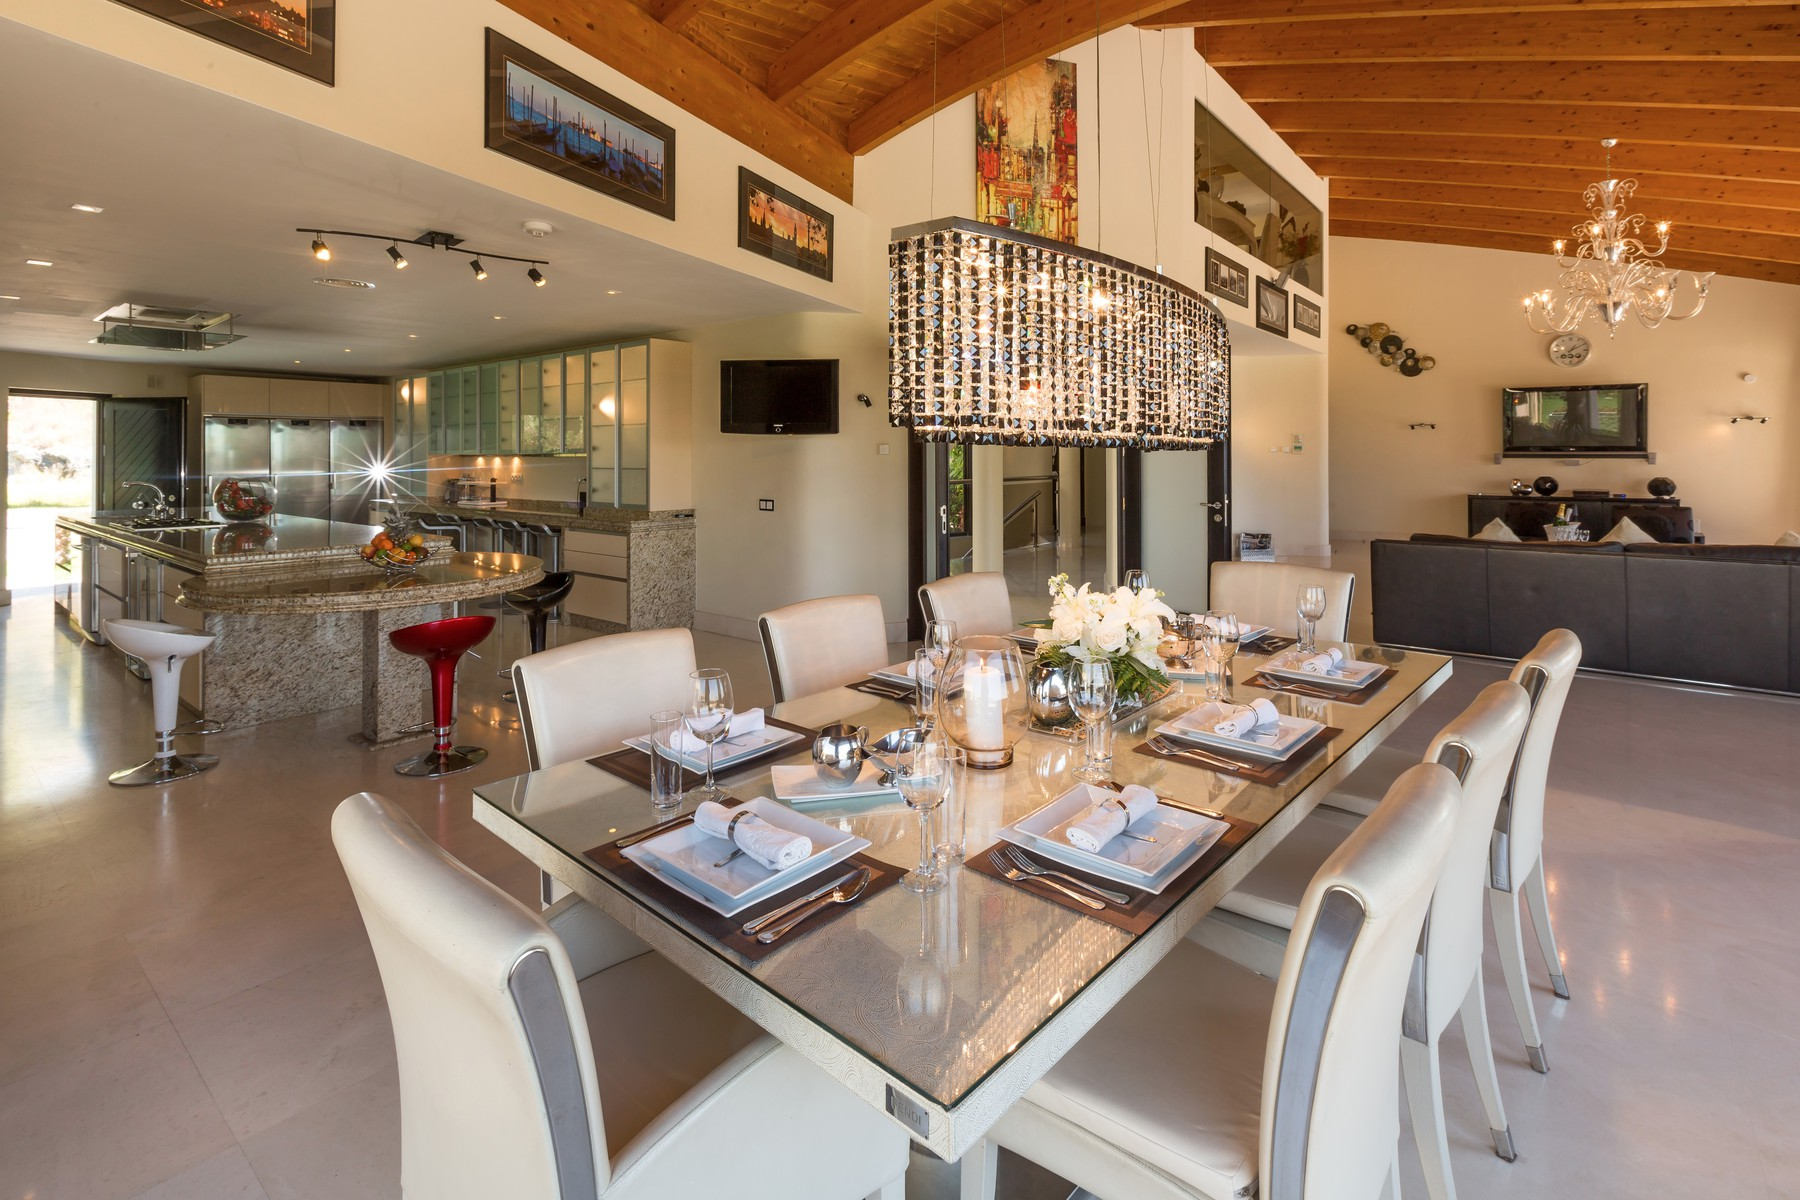 11-villa-el-cano-kitchen-dining-area